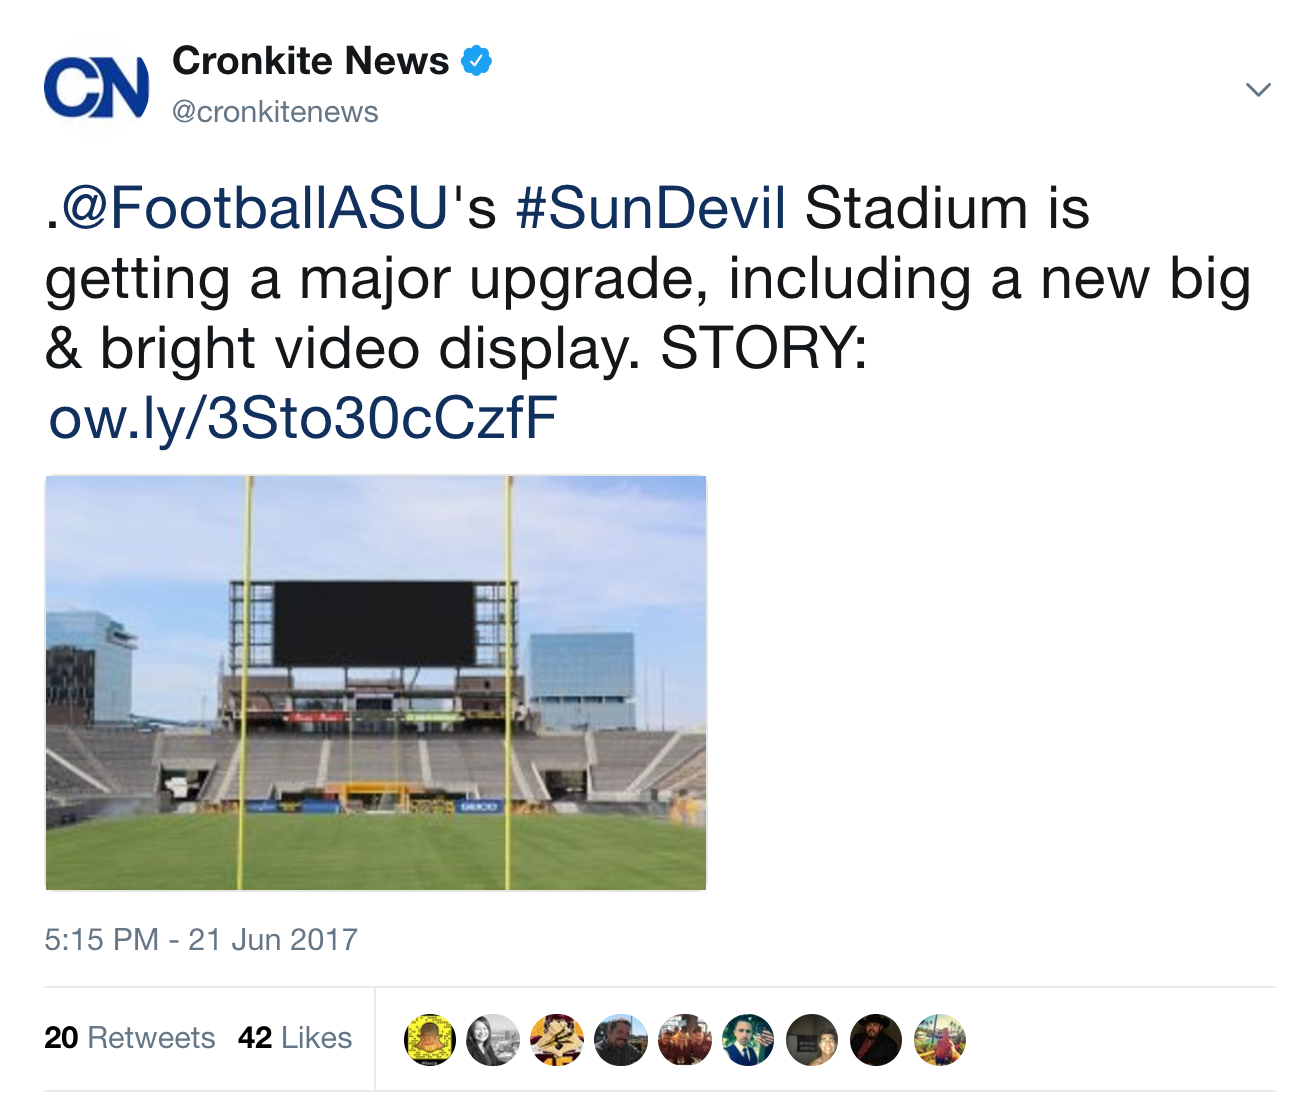 """Tweet from Cronkite News (@cronkitenews) at 5:15PM, 21 June 2017, that reads: """".@FootballASU's #SunDevil Stadium is getting a major upgrade, including a new big & bright video display. STORY: ow.ly/3Sto30cCzfF"""" and is accompanied by na image of the large screen at the Sen Devil Stadium.The tweet has 20 retweets and 42 likes."""